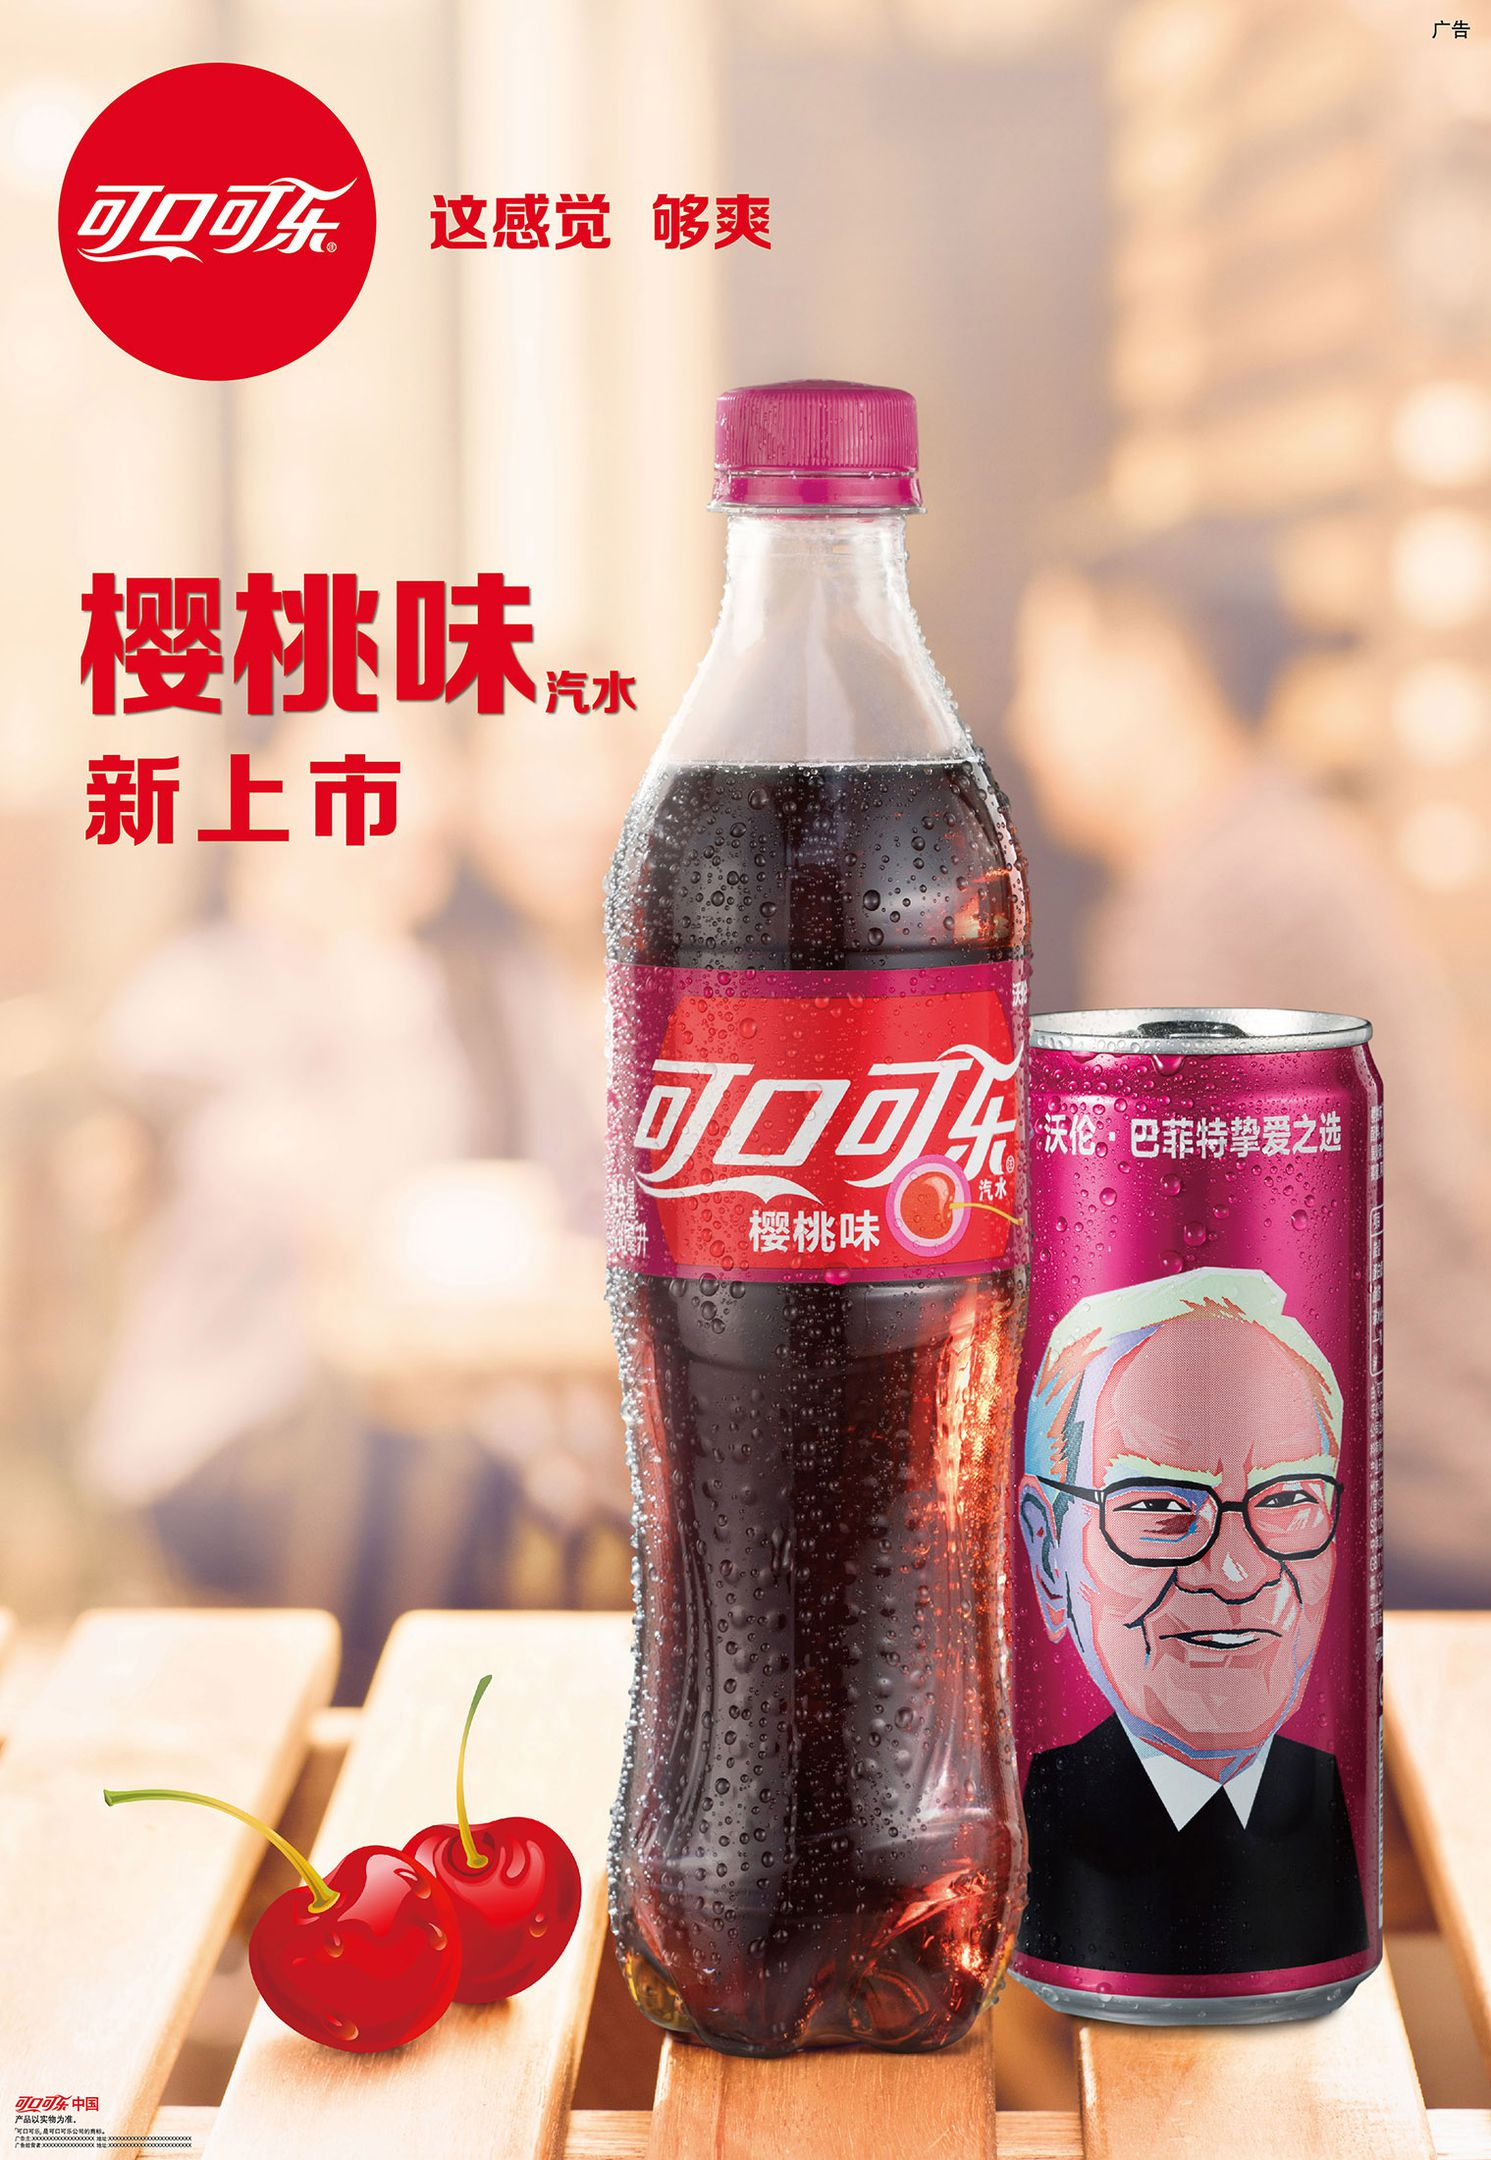 <strong>Warren Buffet appears on Cherry Coke</strong>